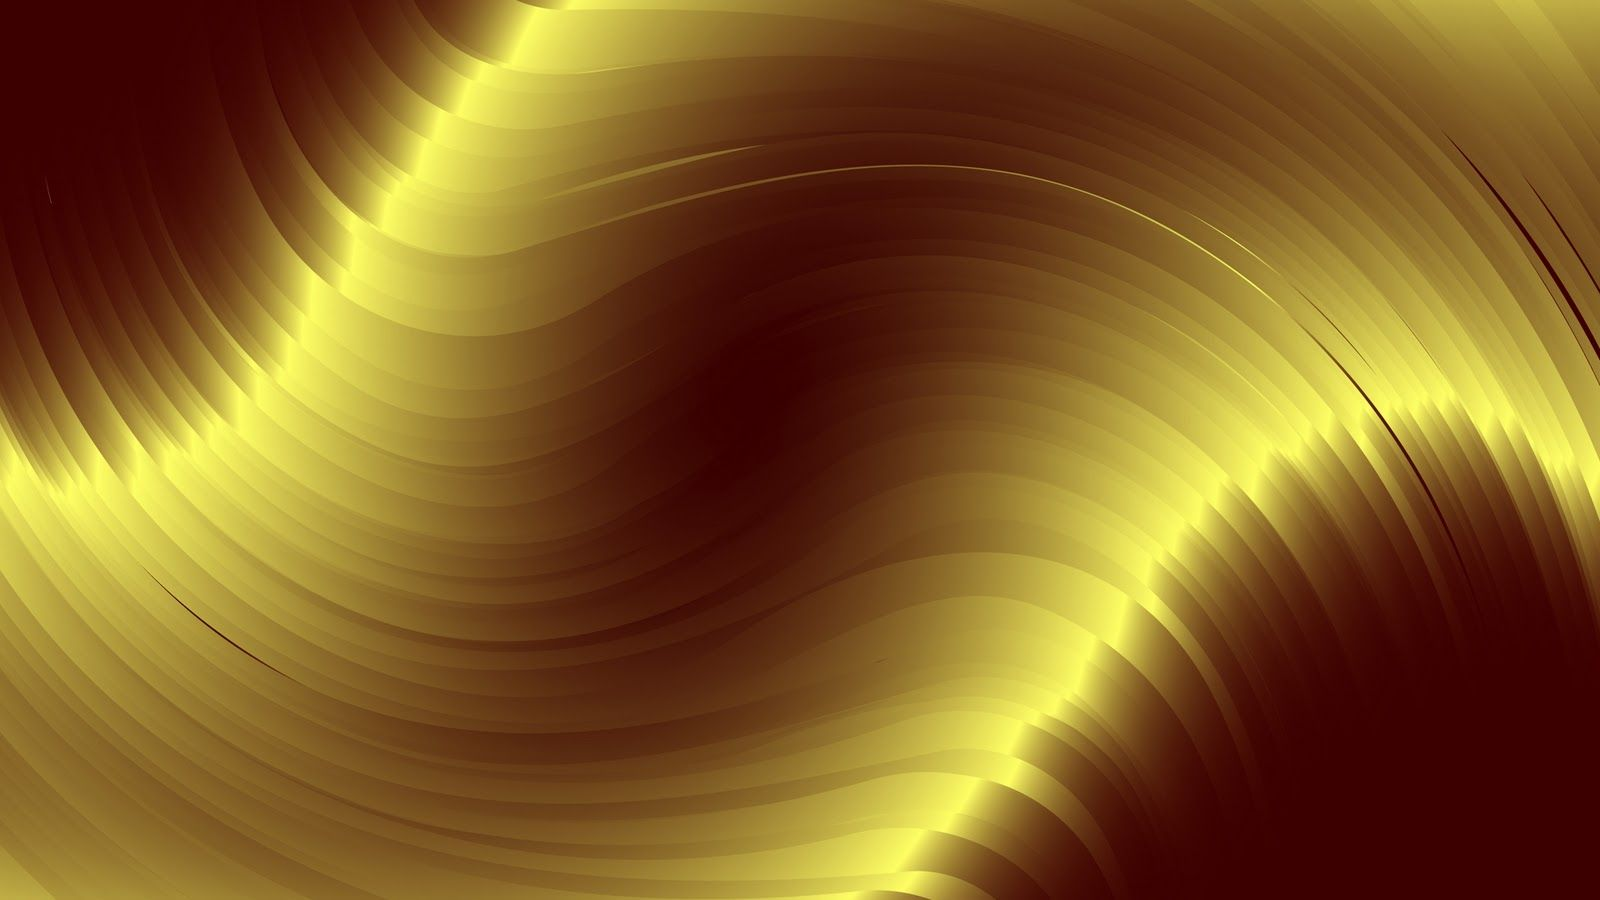 Golden Design Wallpaper : Design pattern best vector wallpapers abstract gold